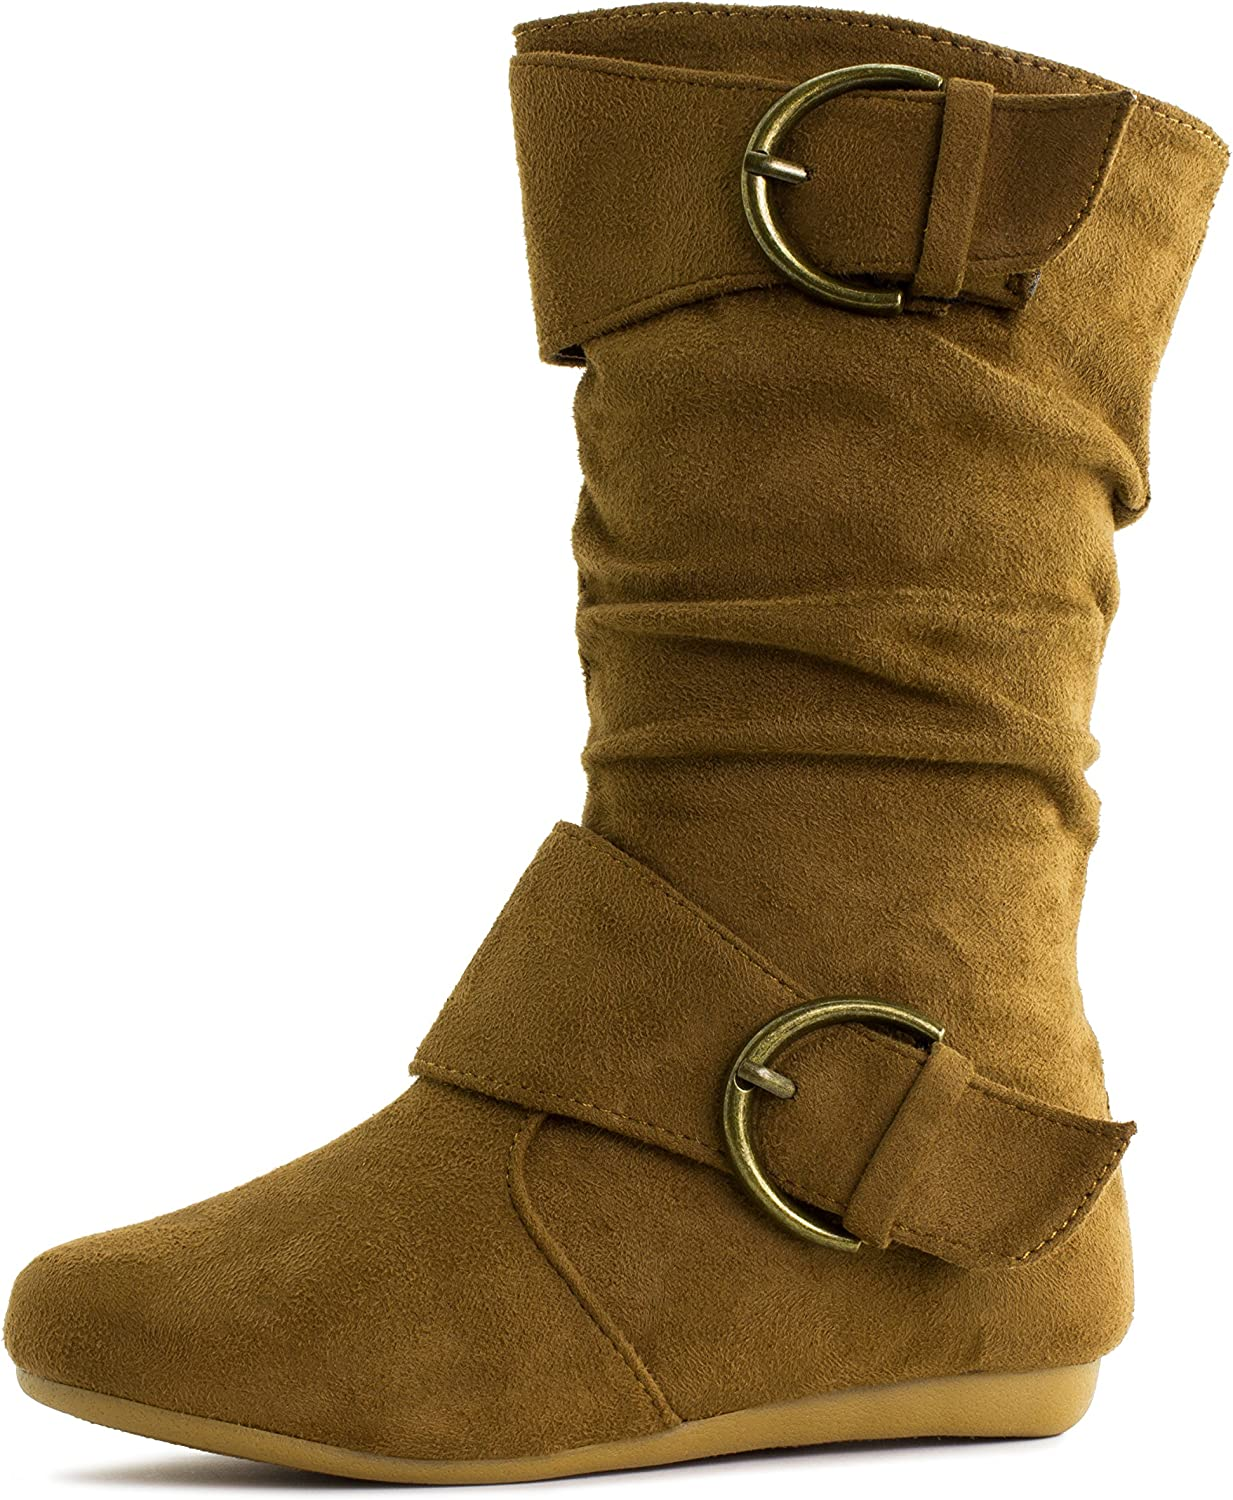 New Toddler Flat Slouchy Mid Calf Casual Dress Boots Withe /& Tan Sizes 4-8 US